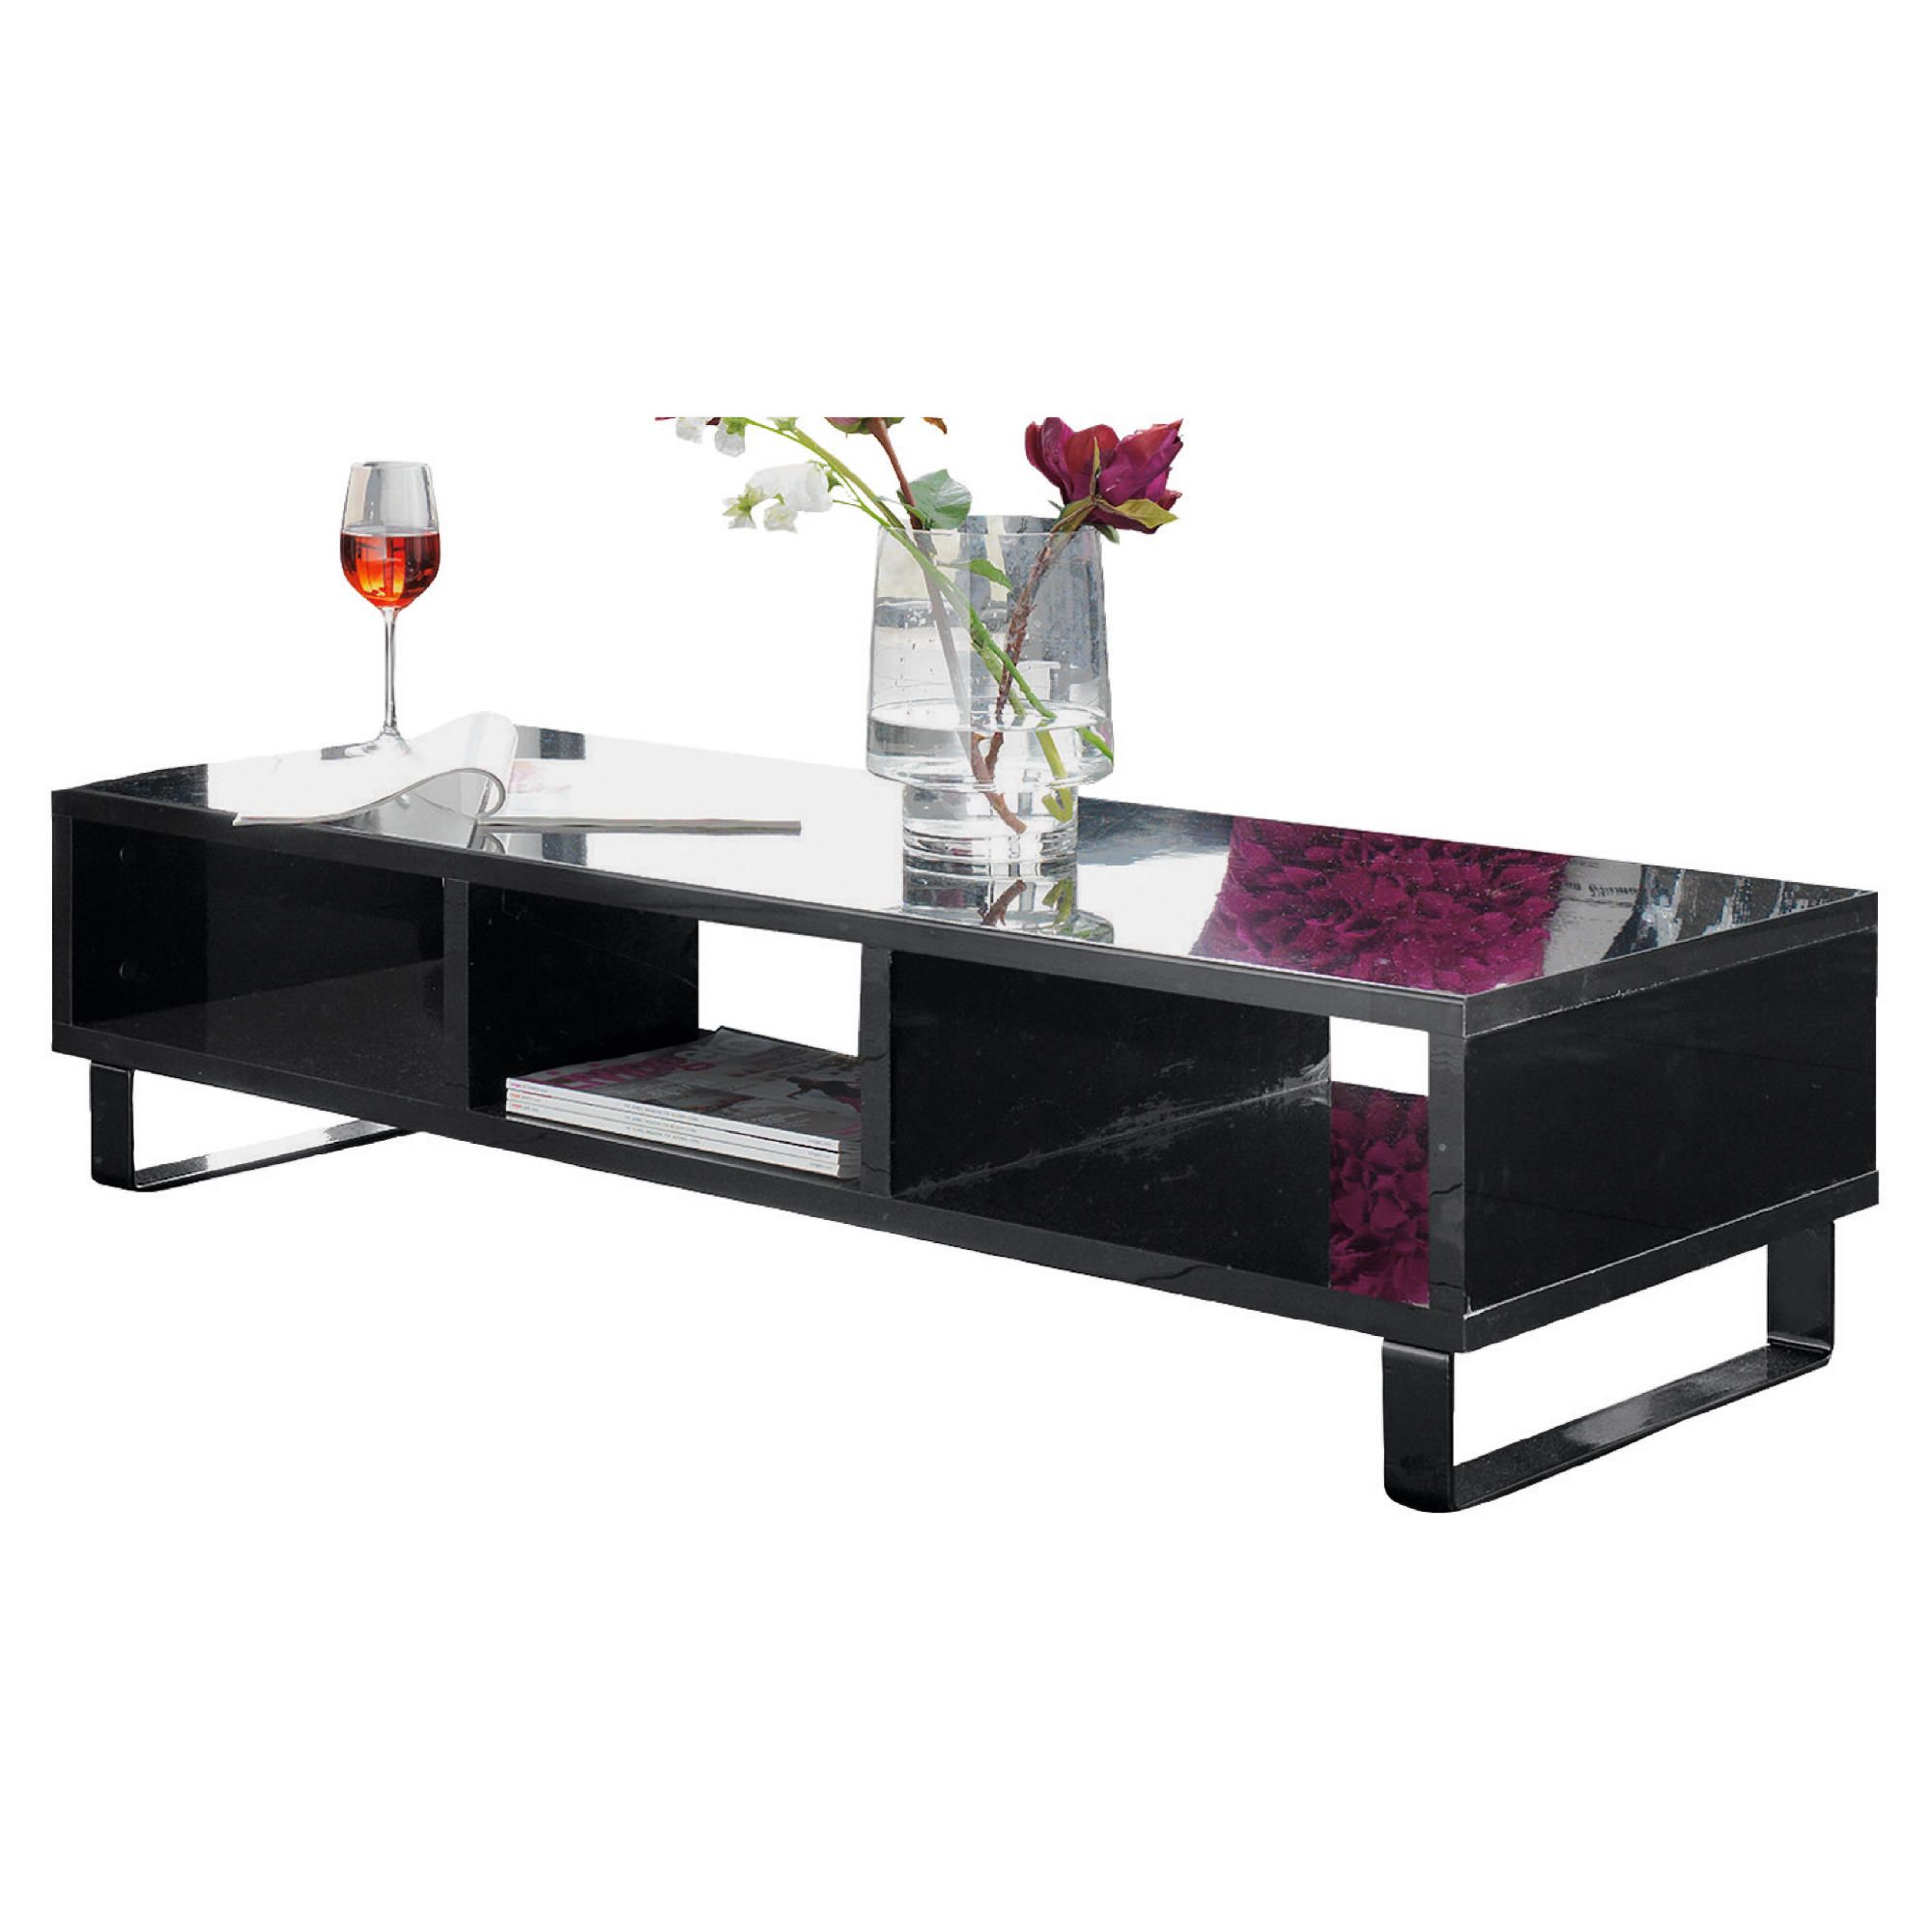 Home And Garden Furniture Jpl Furniture Miami Coffee Table Black Rose White Special Offers